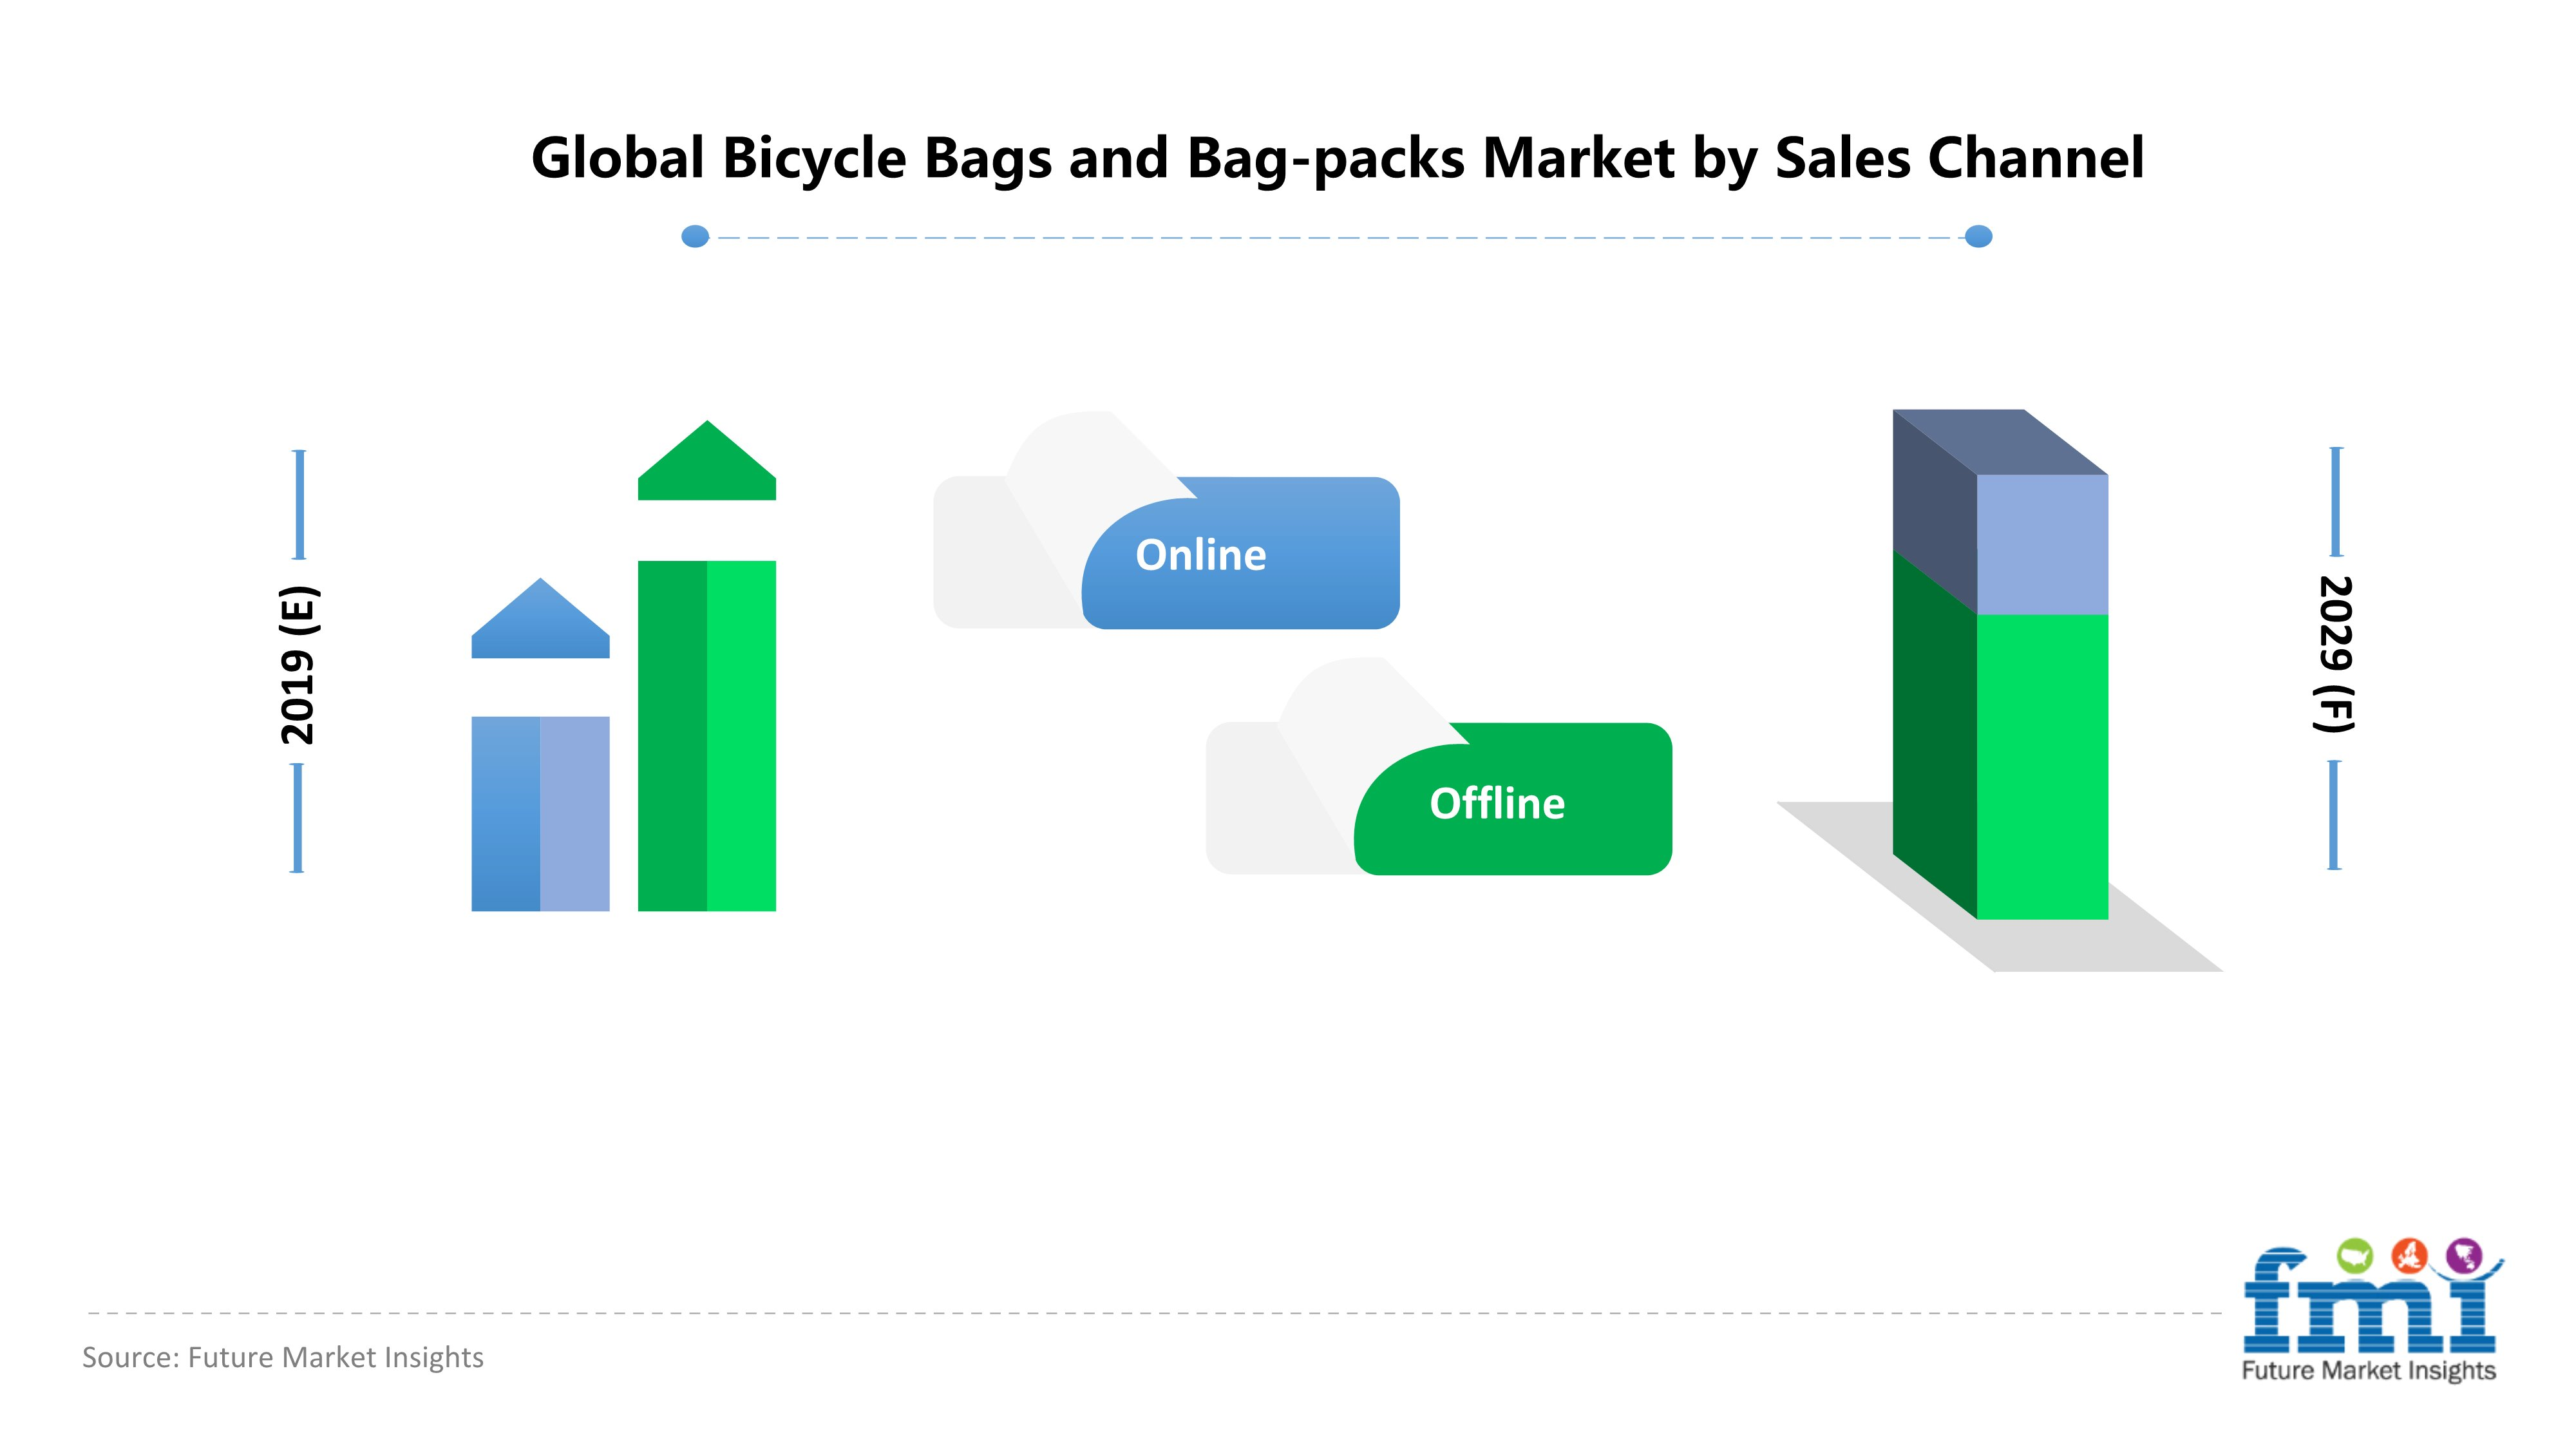 Global Bicycle Bags and Bag-packs Market by Sales Channel